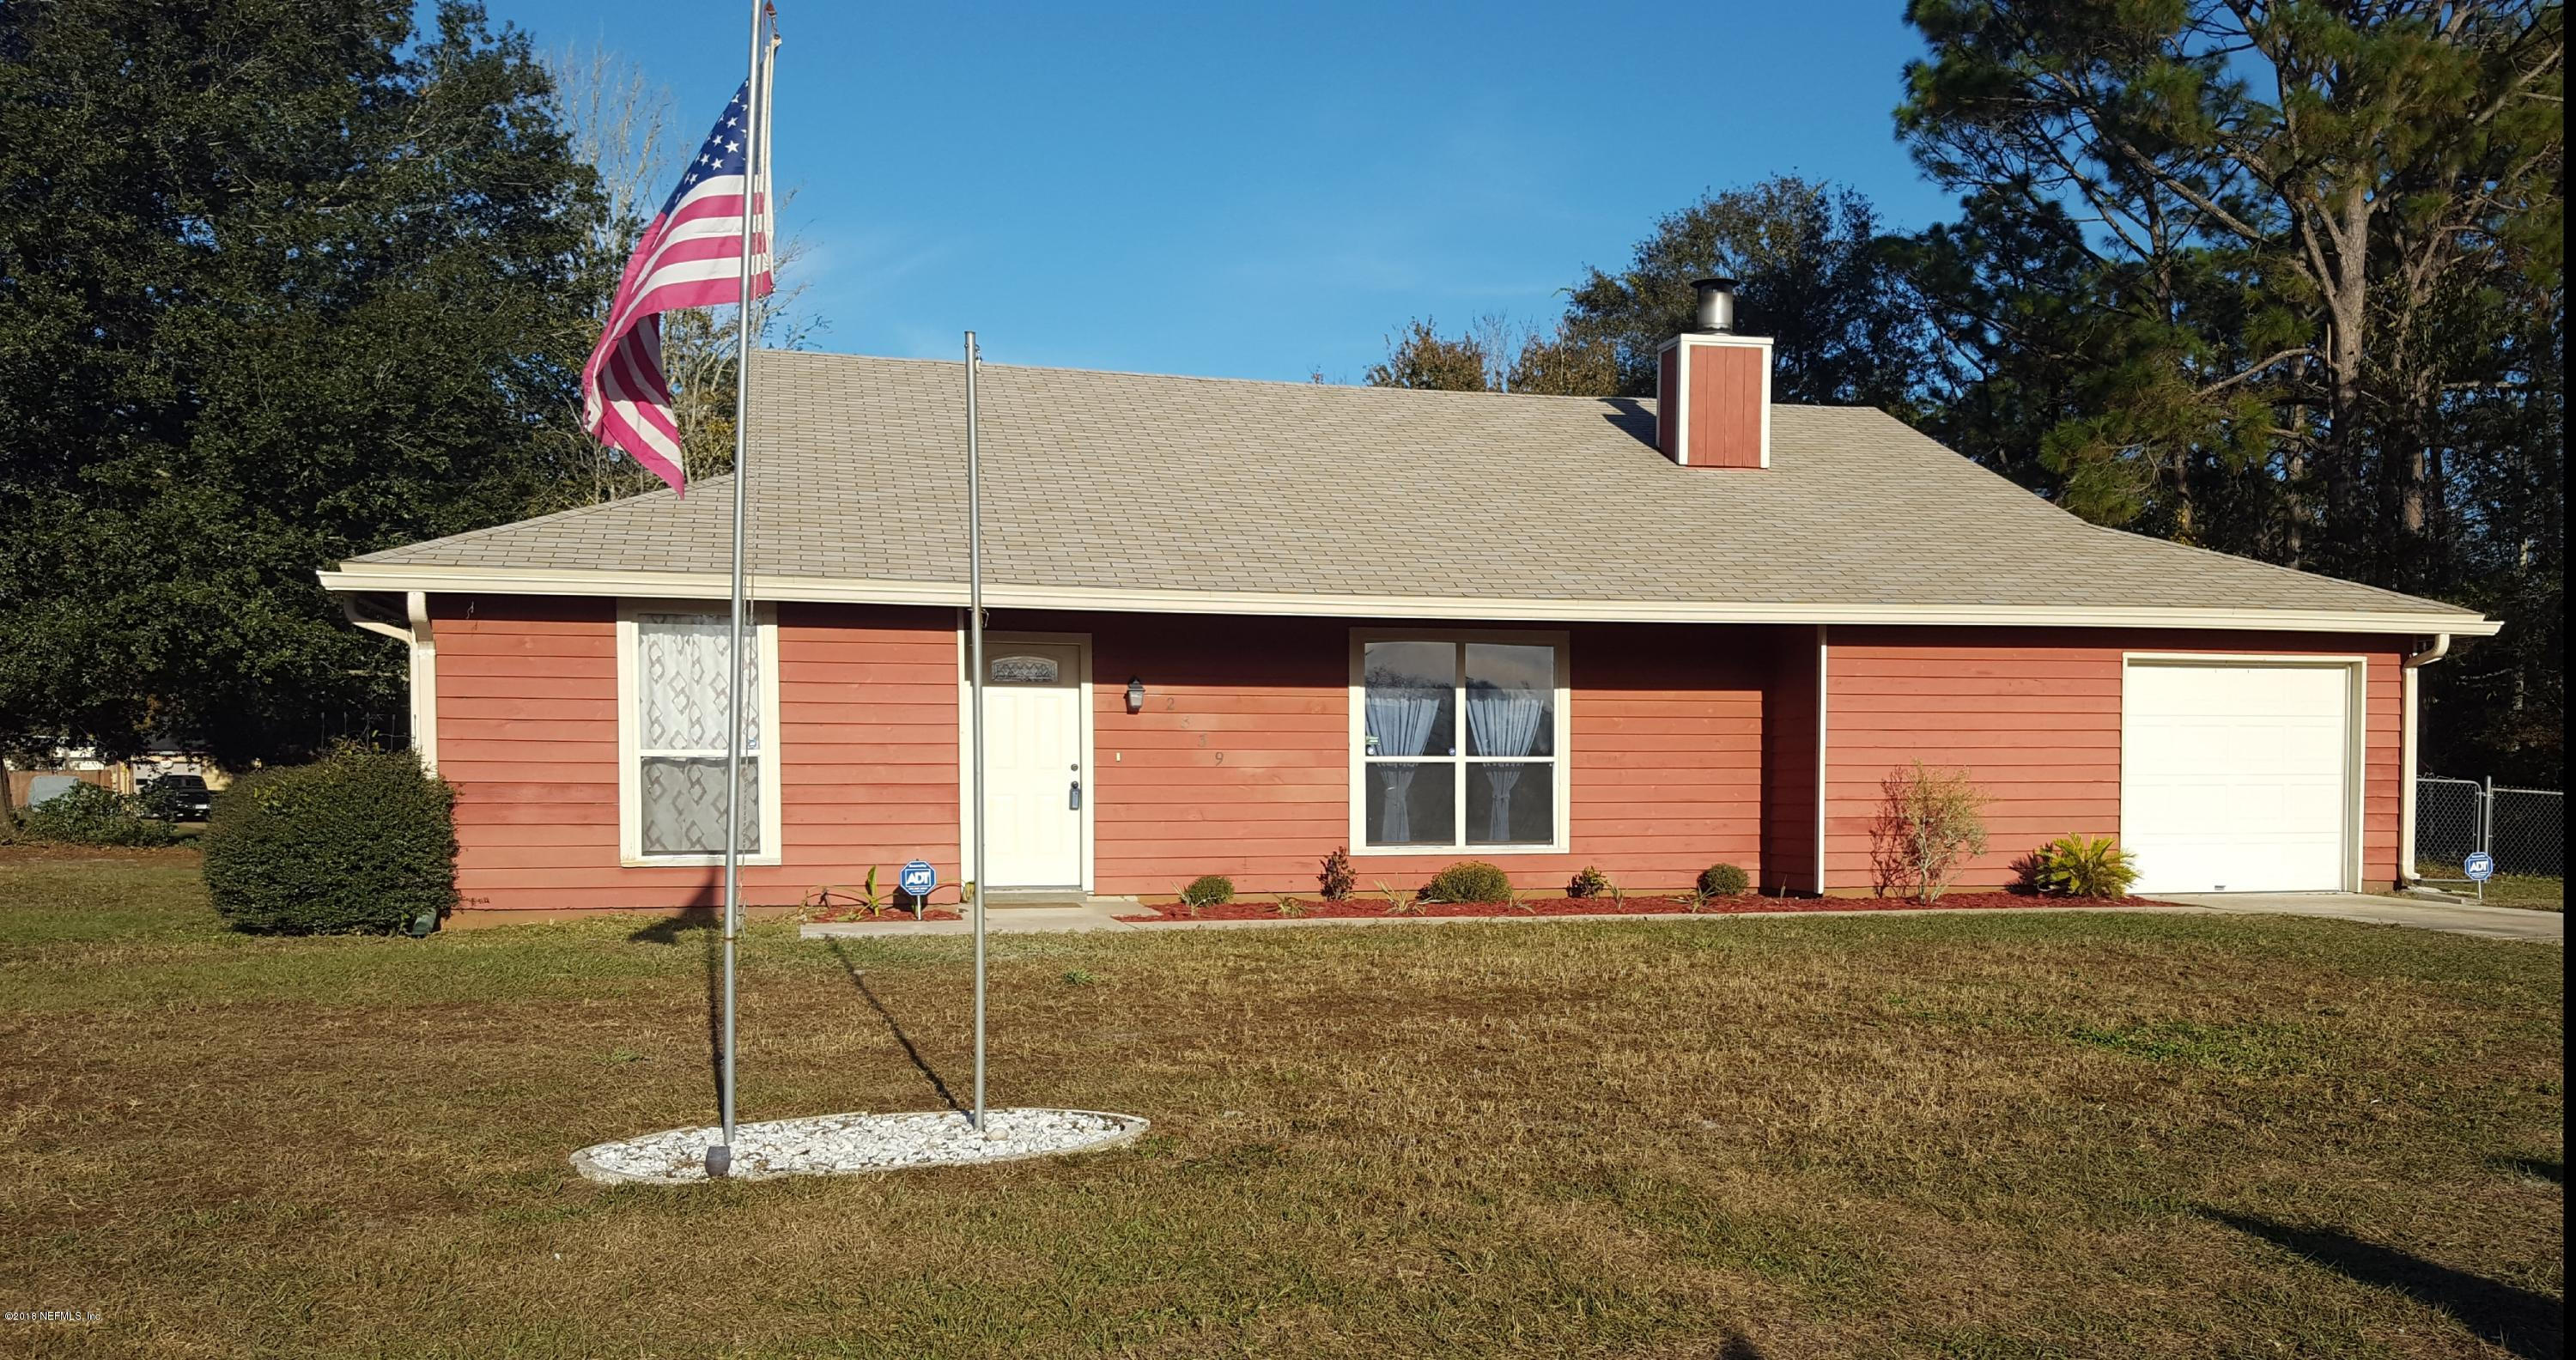 2839 ERIN, ORANGE PARK, FLORIDA 32065, 4 Bedrooms Bedrooms, ,2 BathroomsBathrooms,Residential - single family,For sale,ERIN,970581